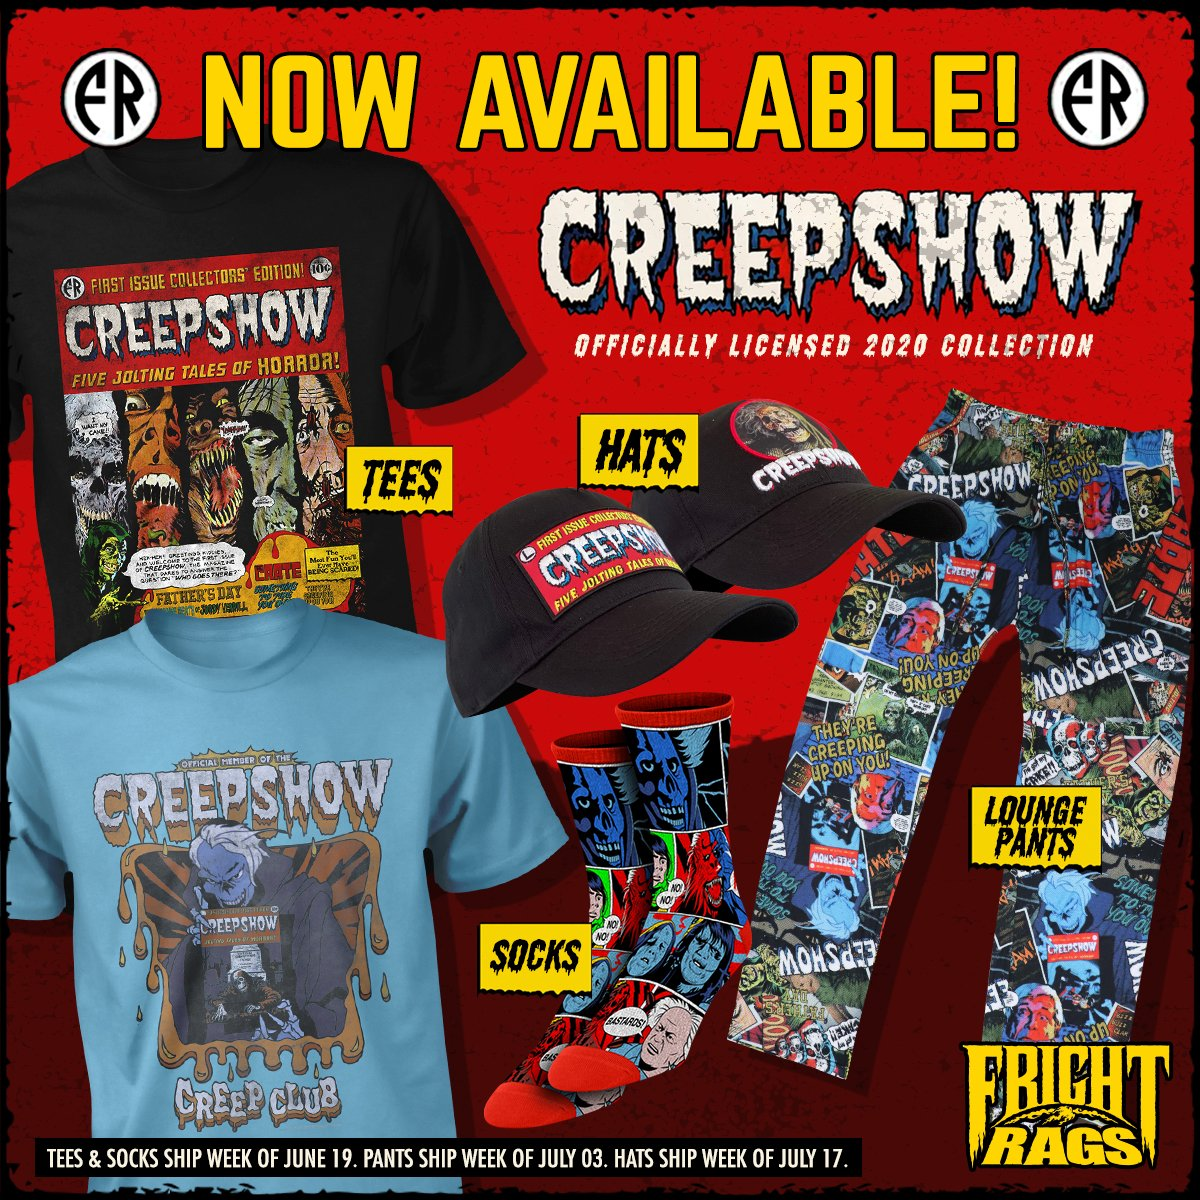 Creepshow Frightrags Collection2020 Square